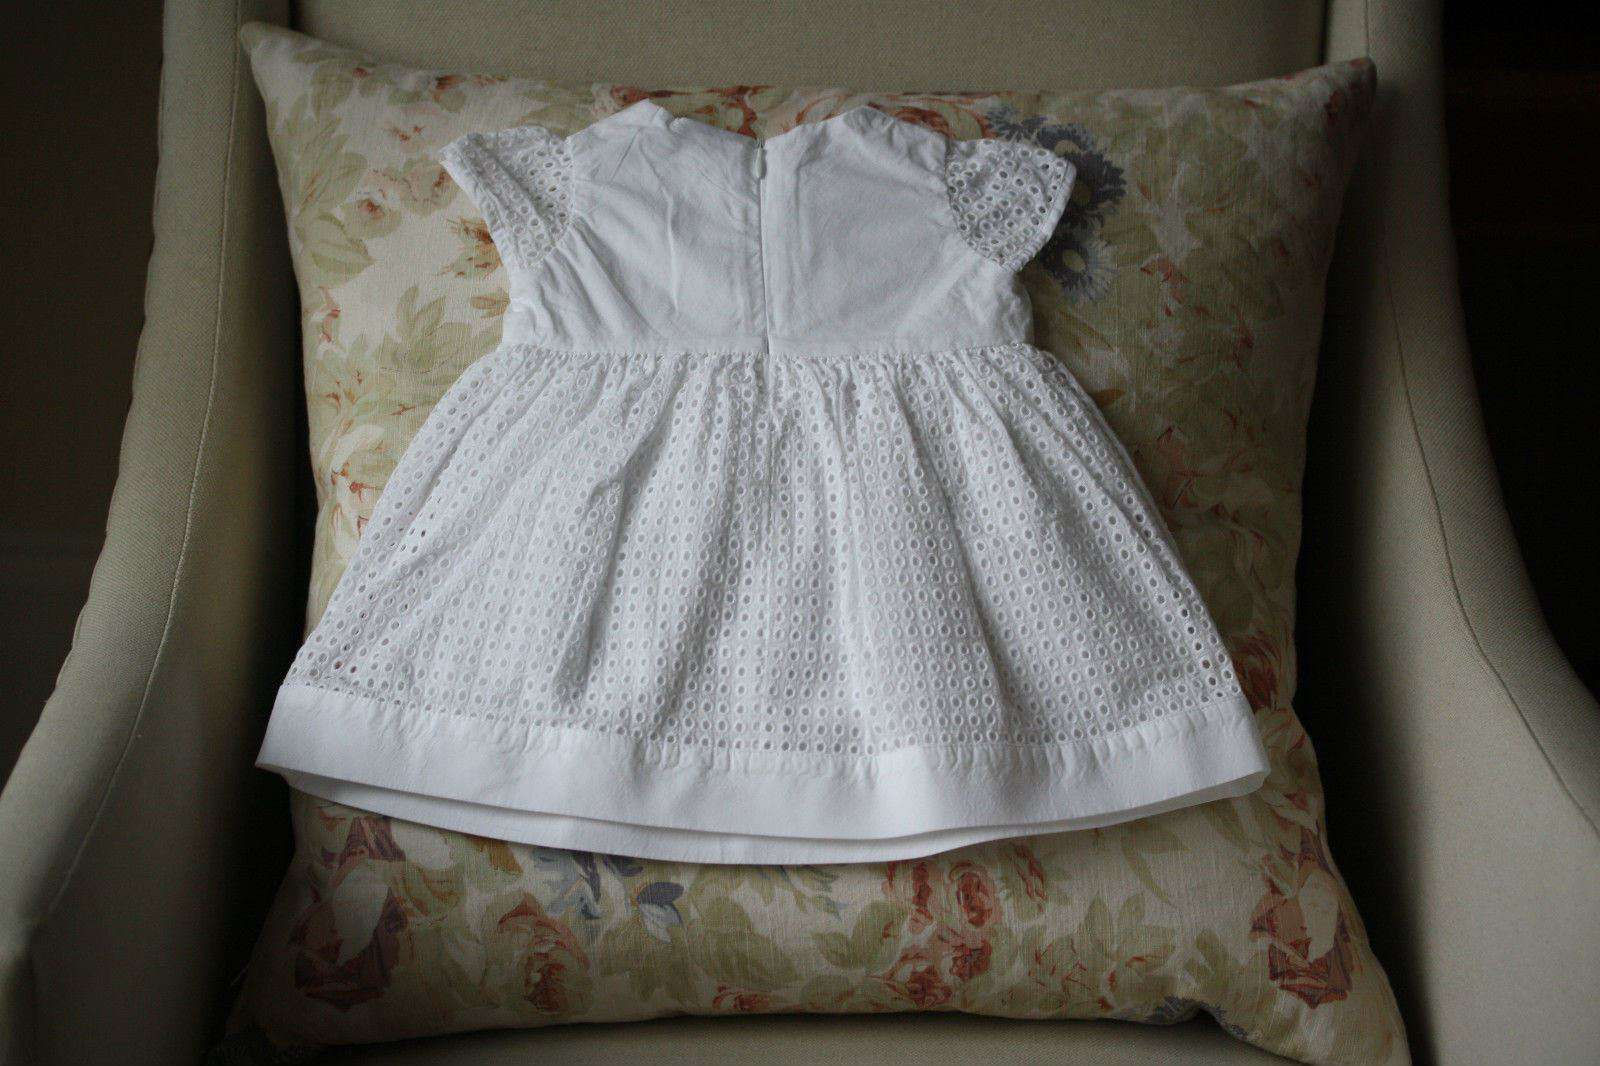 FENDI BABY WHITE CELEBRATION DRESS 3 MONTHS